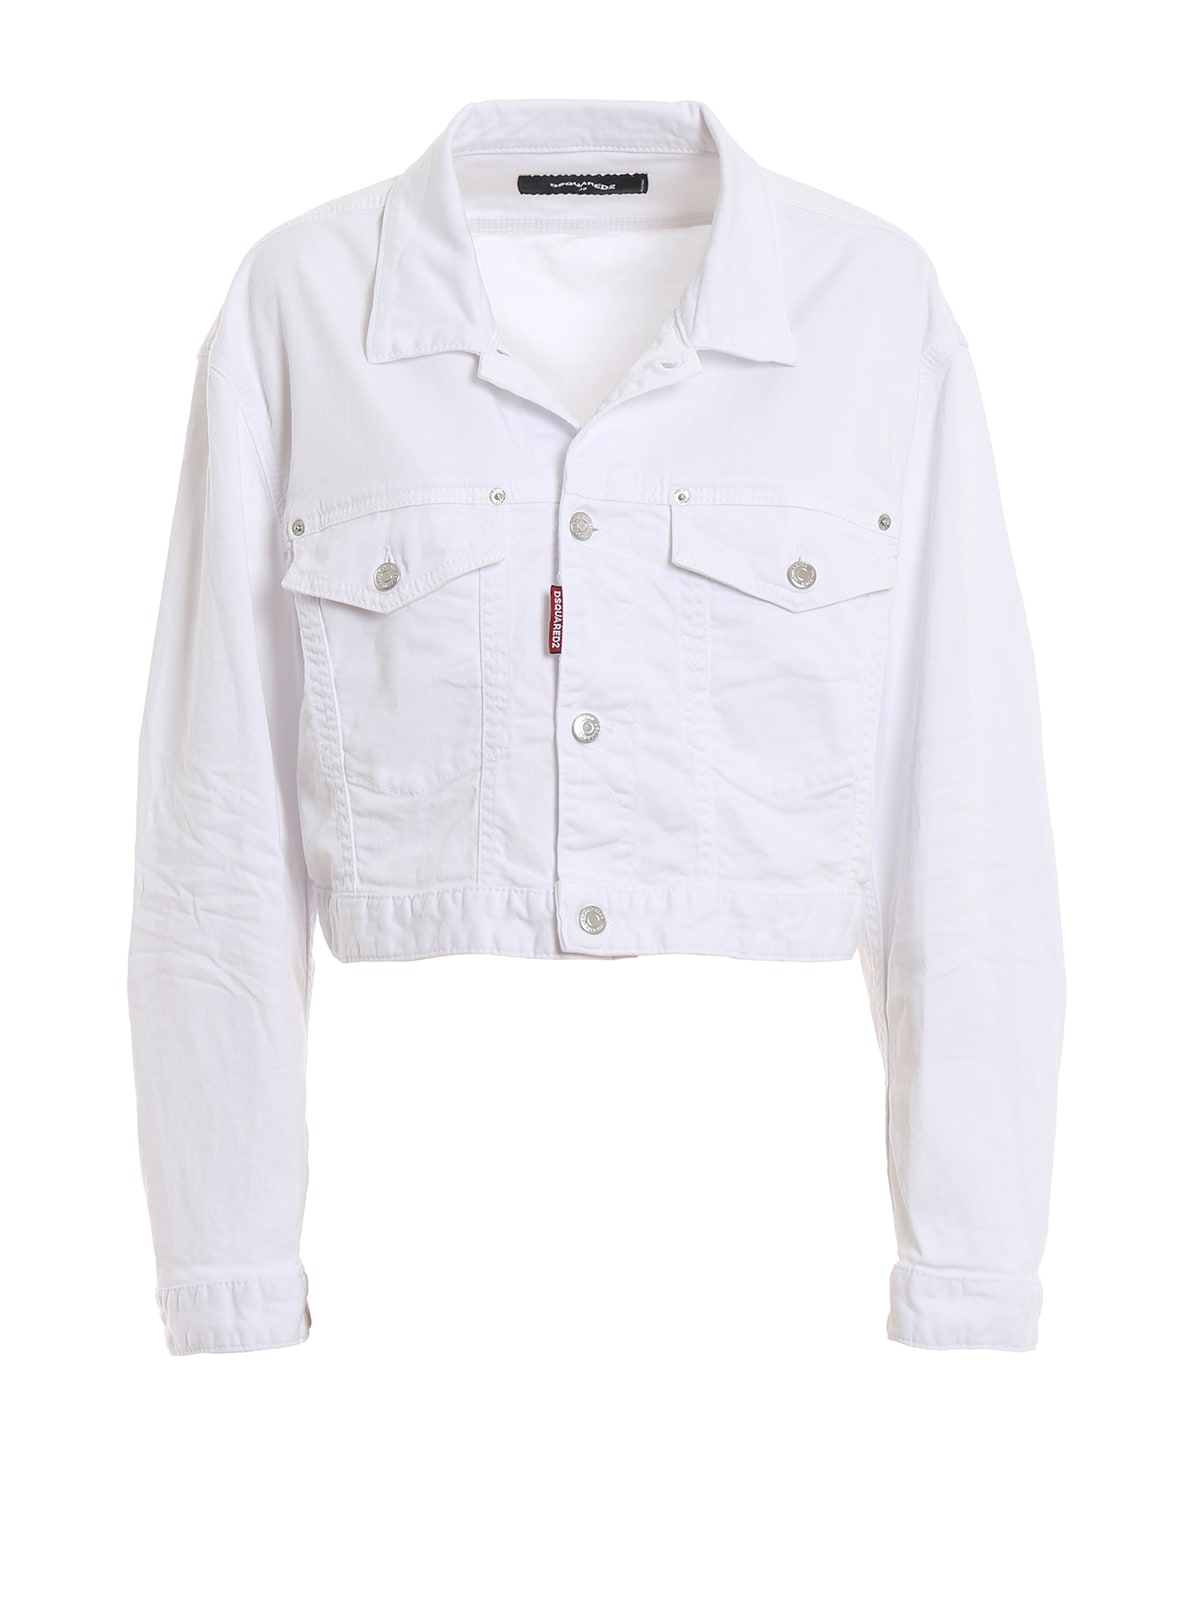 Dsquared2 White Cotton Denim Cropped Jacket